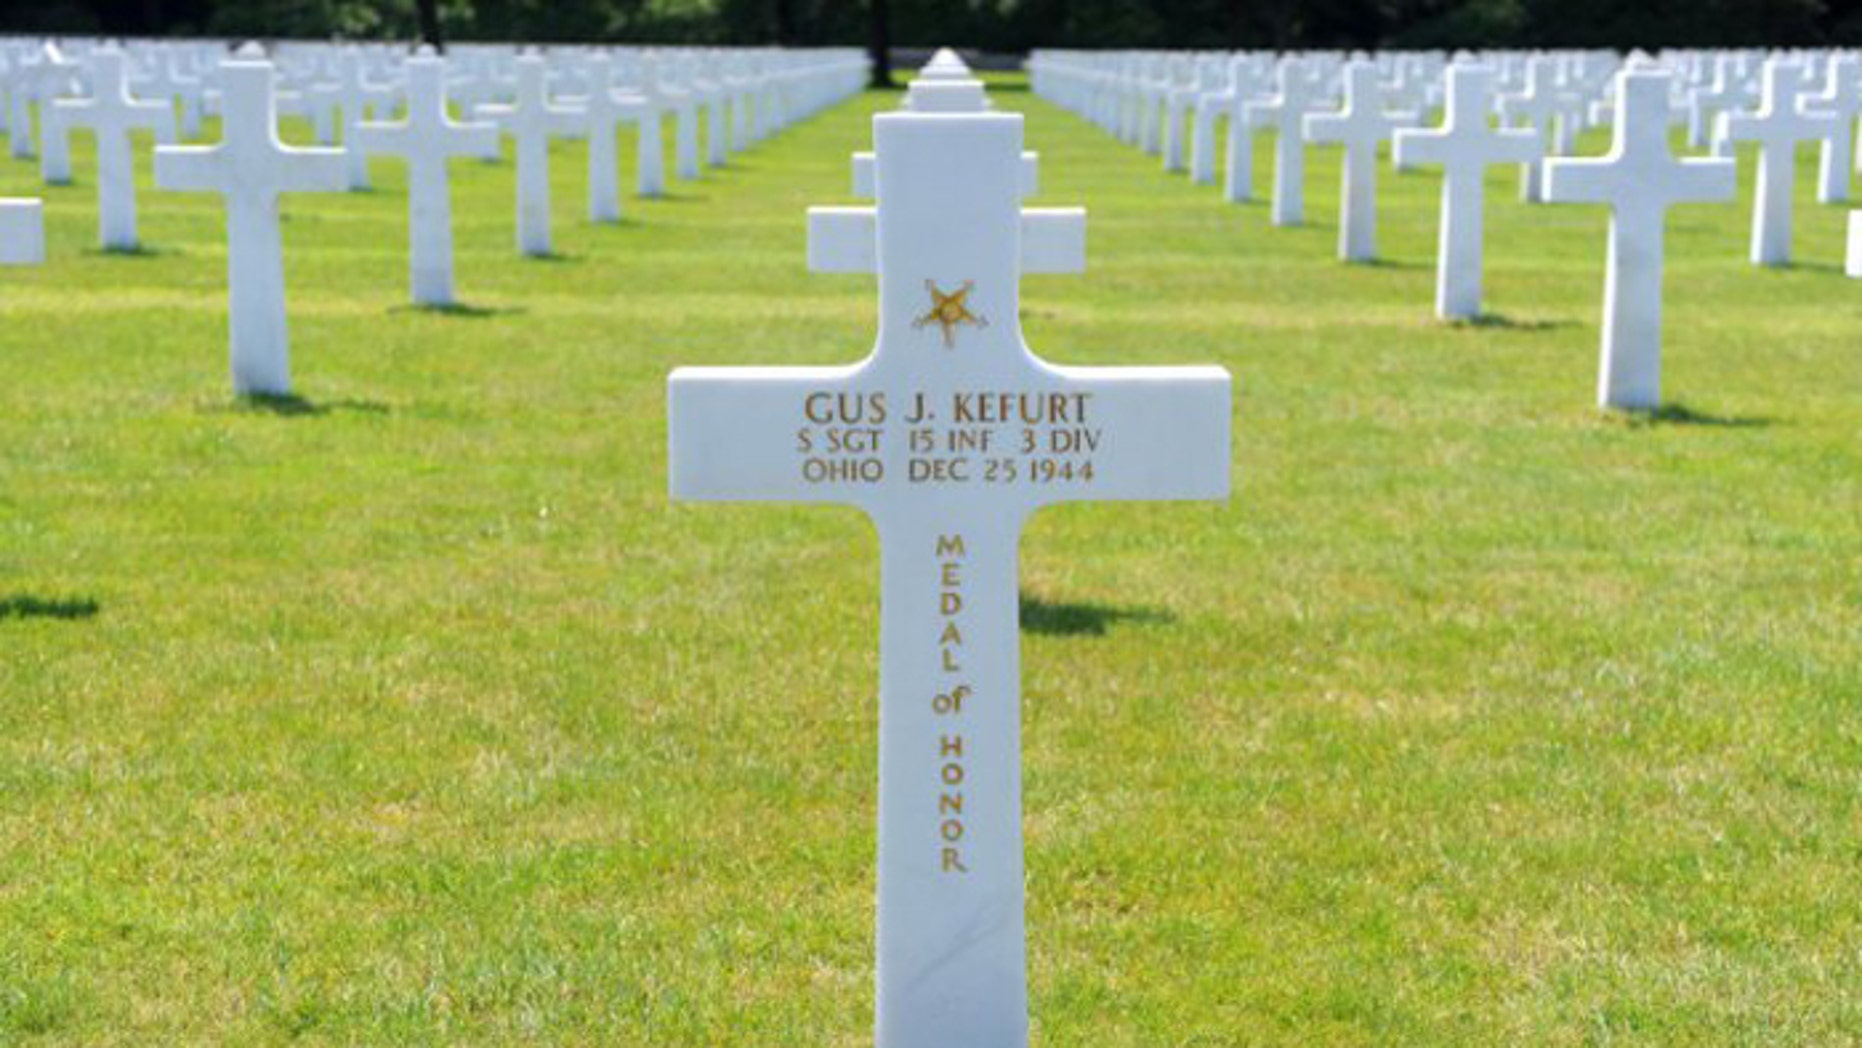 The headstone of Medal of Honor recipient Staff Sgt. Gus J. Kefurt, a soldier assigned to the 15th Infantry Regiment, 3rd Infantry Division and a native of Youngstown, Ohio, stands among the 5,255 other Soldiers buried at Epinal American Cemetery in France. (www.army.mil)